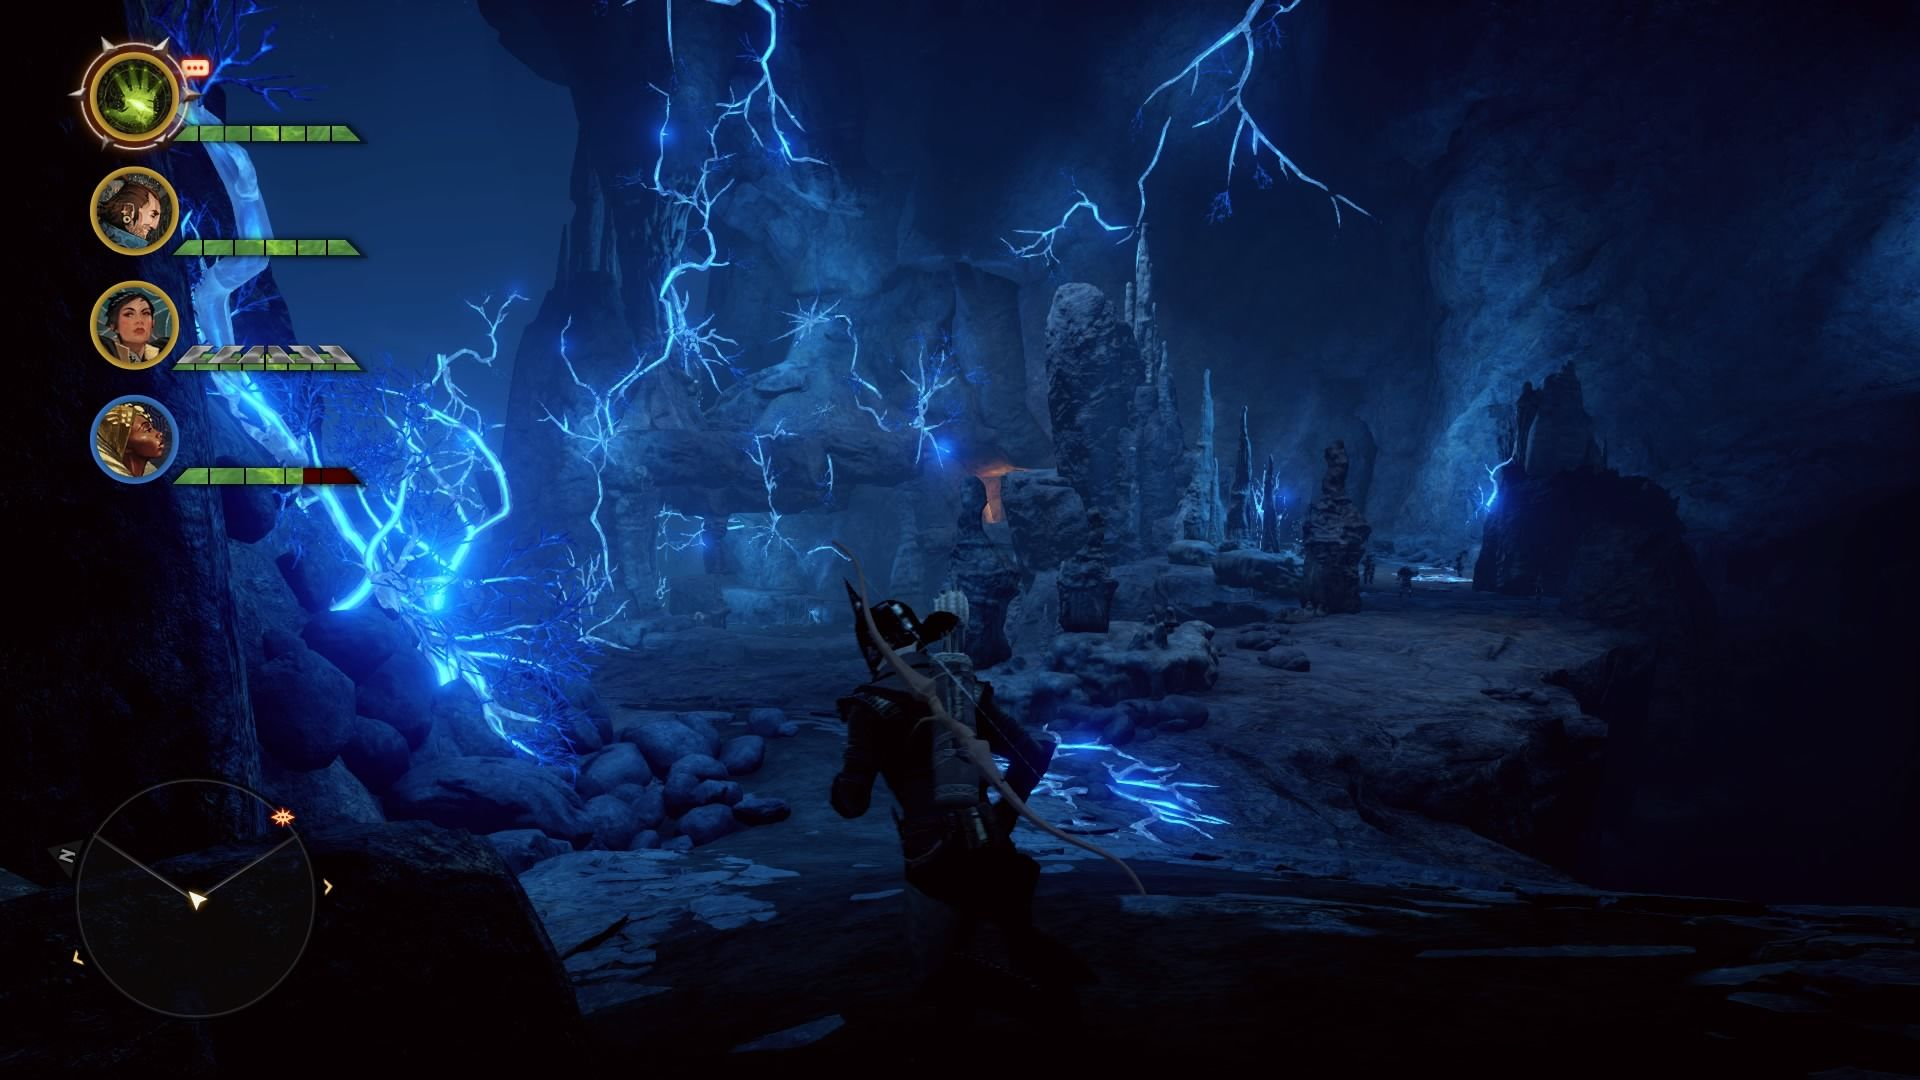 Dragon Age: Inquisition - The Descent PlayStation 4 Branching paths let you avoid enemy if you don't want to fight everyone